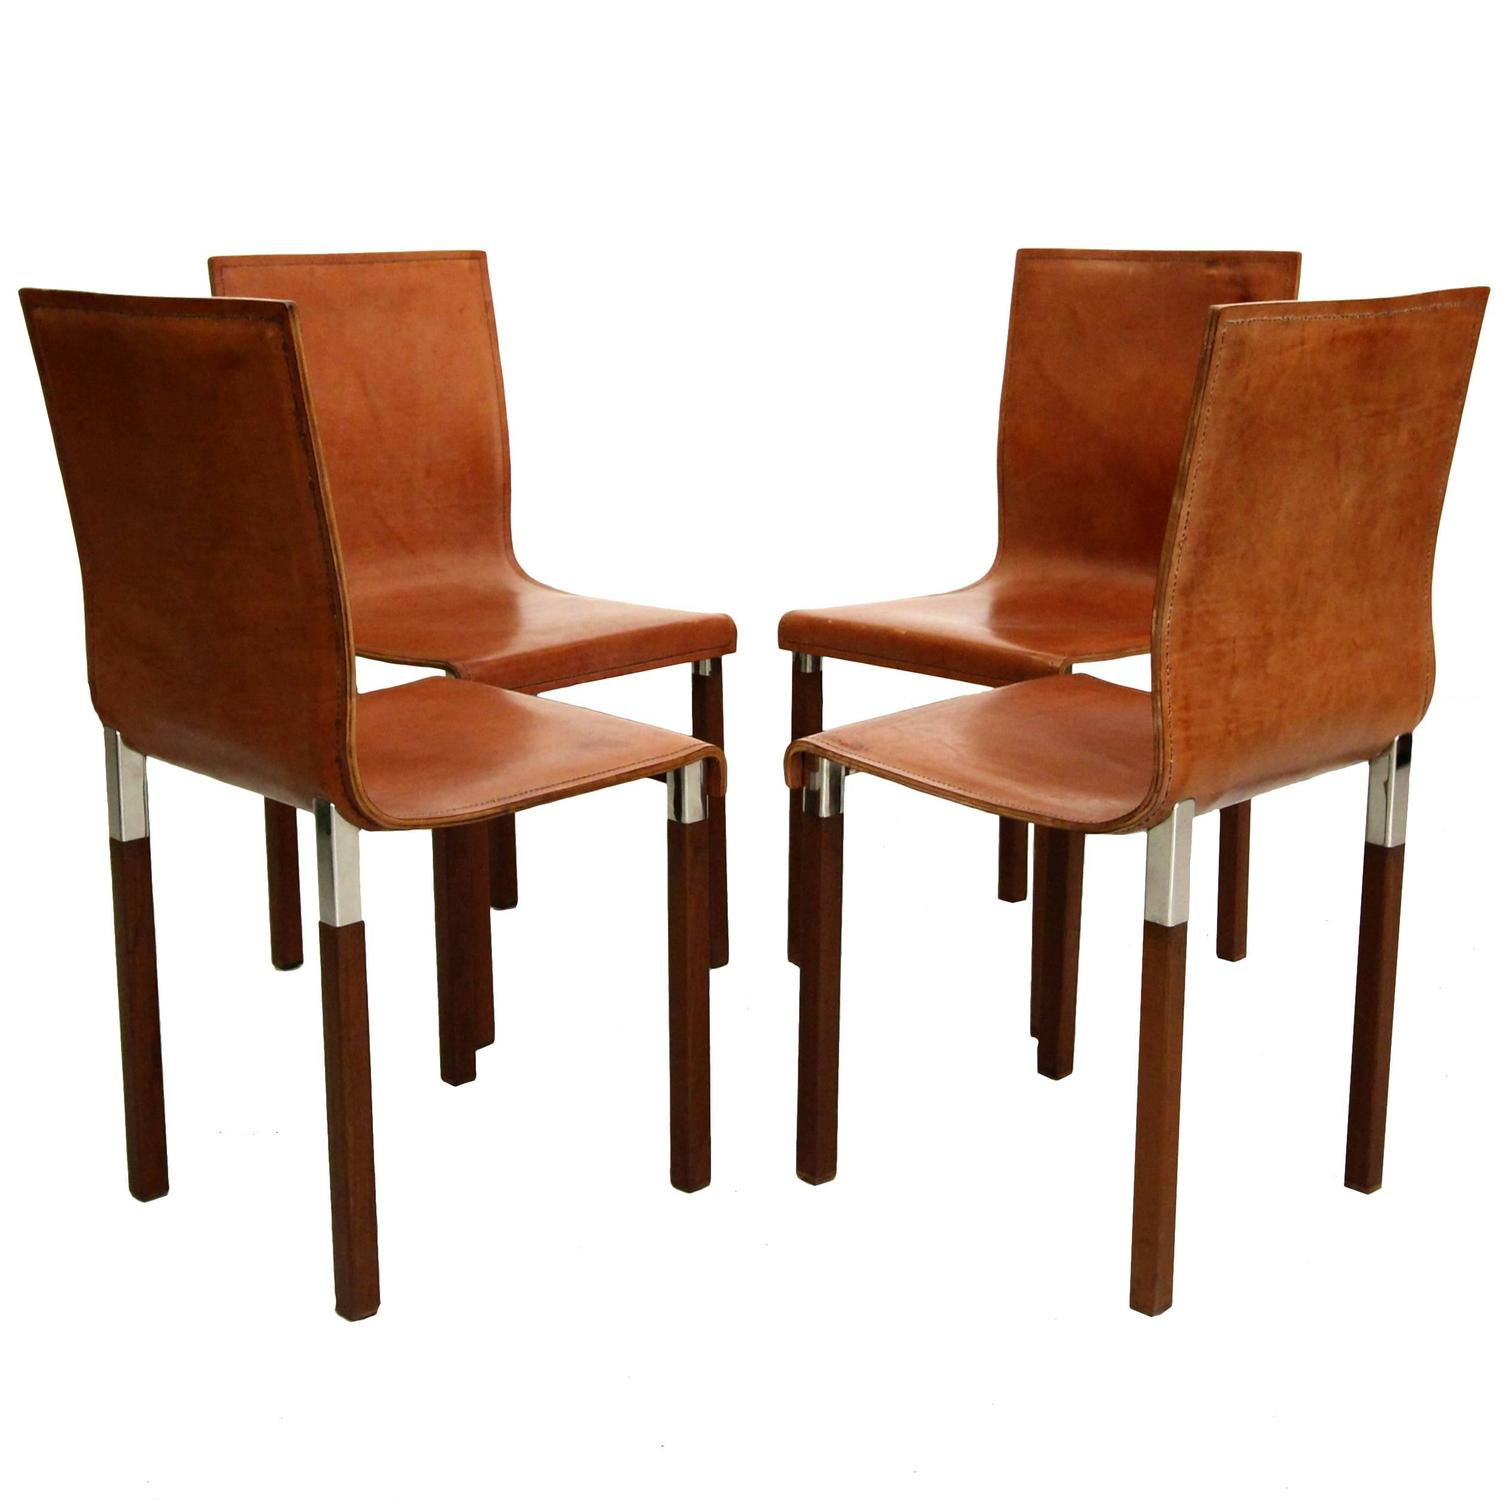 Modern Industrial Chair Set Of Four Leather Emile Industrial Modern Dining Chairs